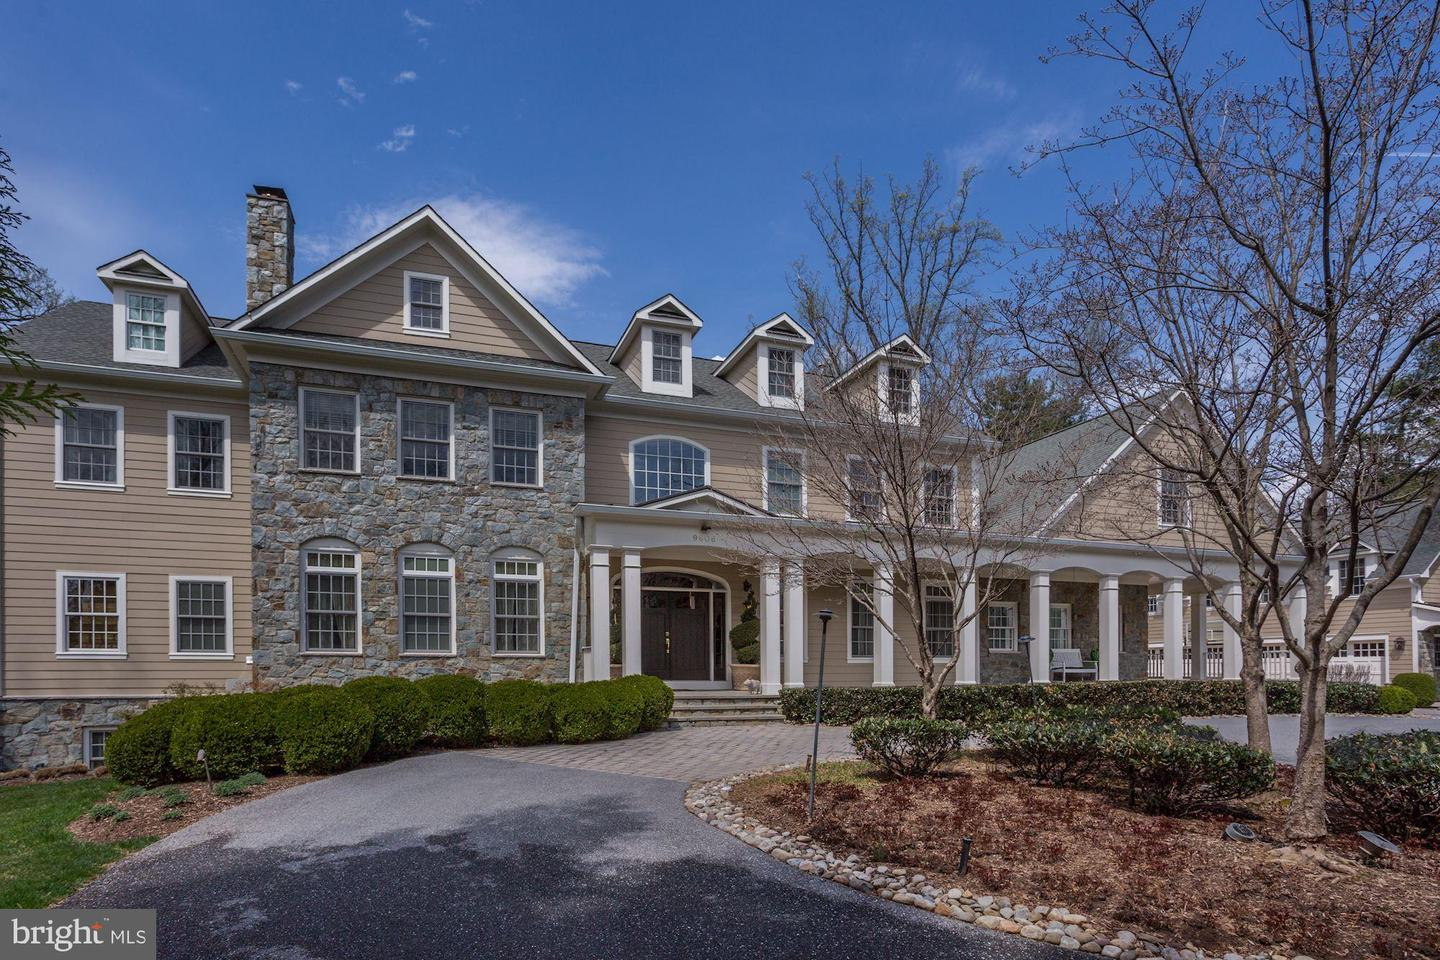 Marmorfliesen Verkaufen Potomac Maryland Vereinigte Staaten Luxury Real Estate Homes For